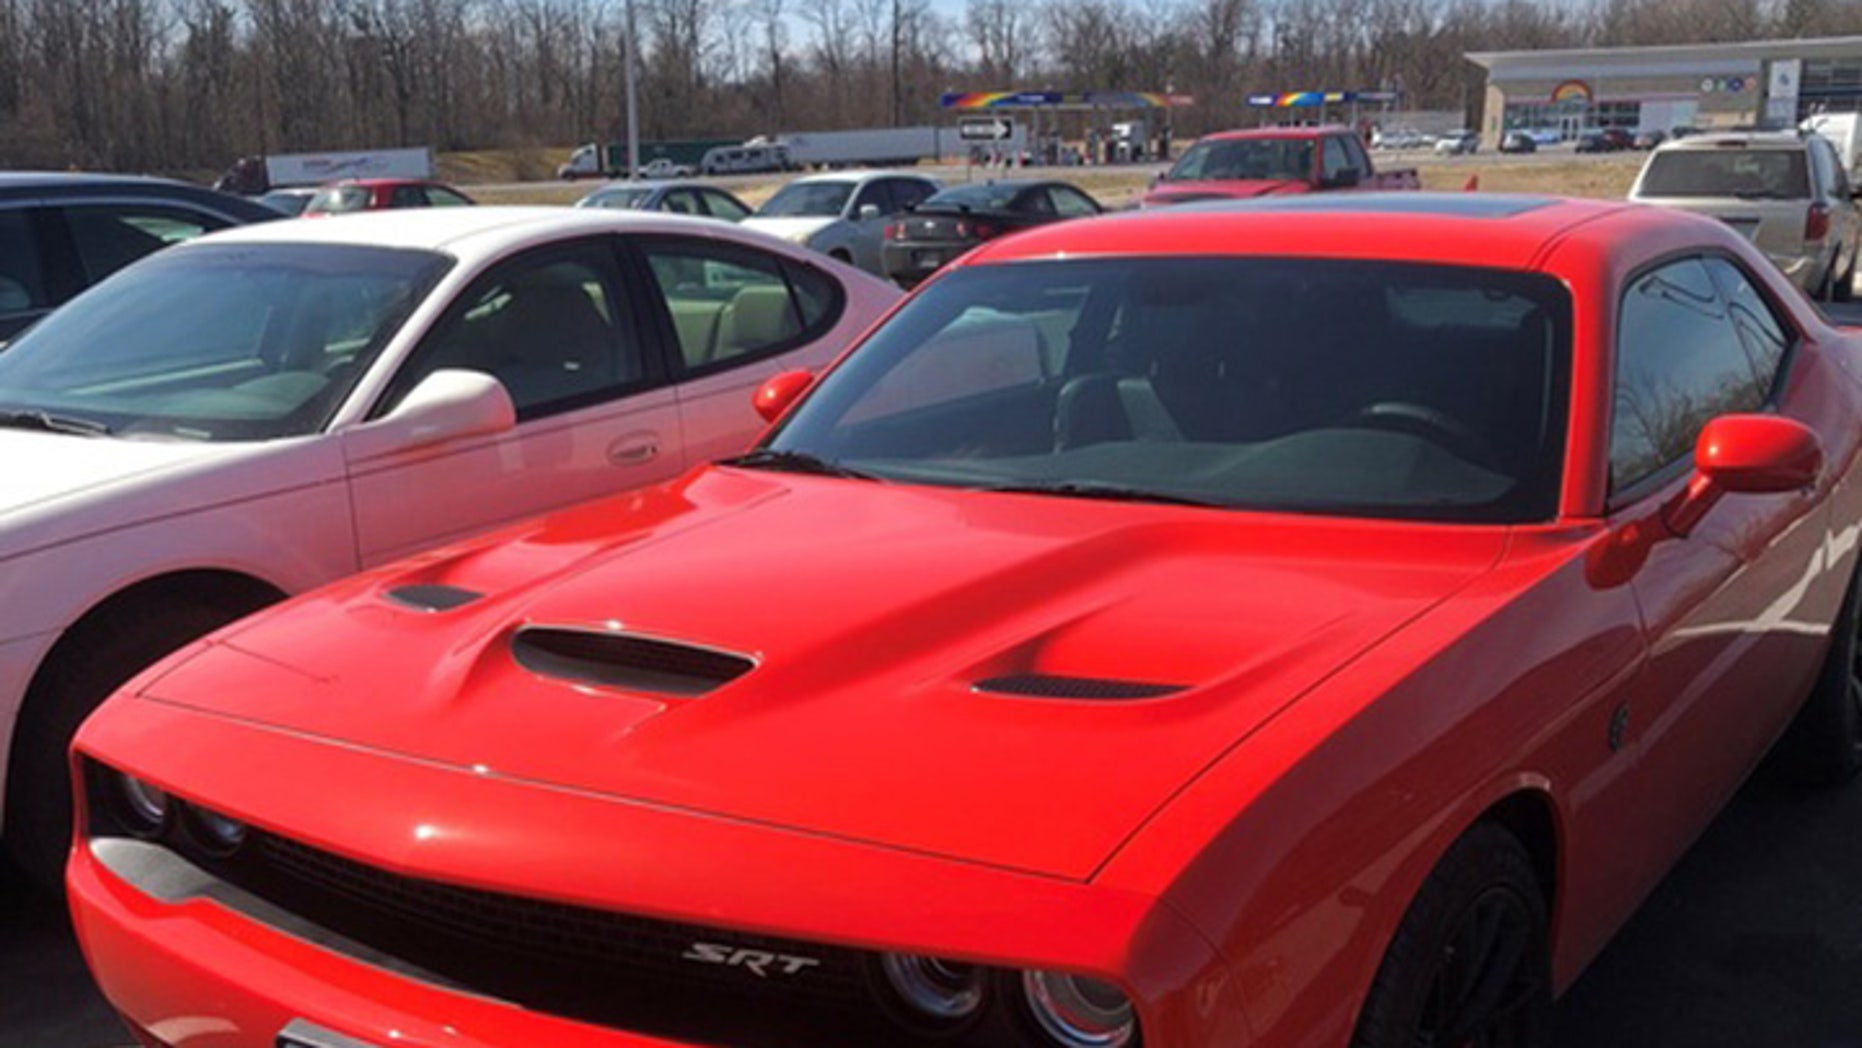 J. Jesus Duran Sandoval told police he was driving over 160 mph in his Dodge Challenger SRT Hellcat.